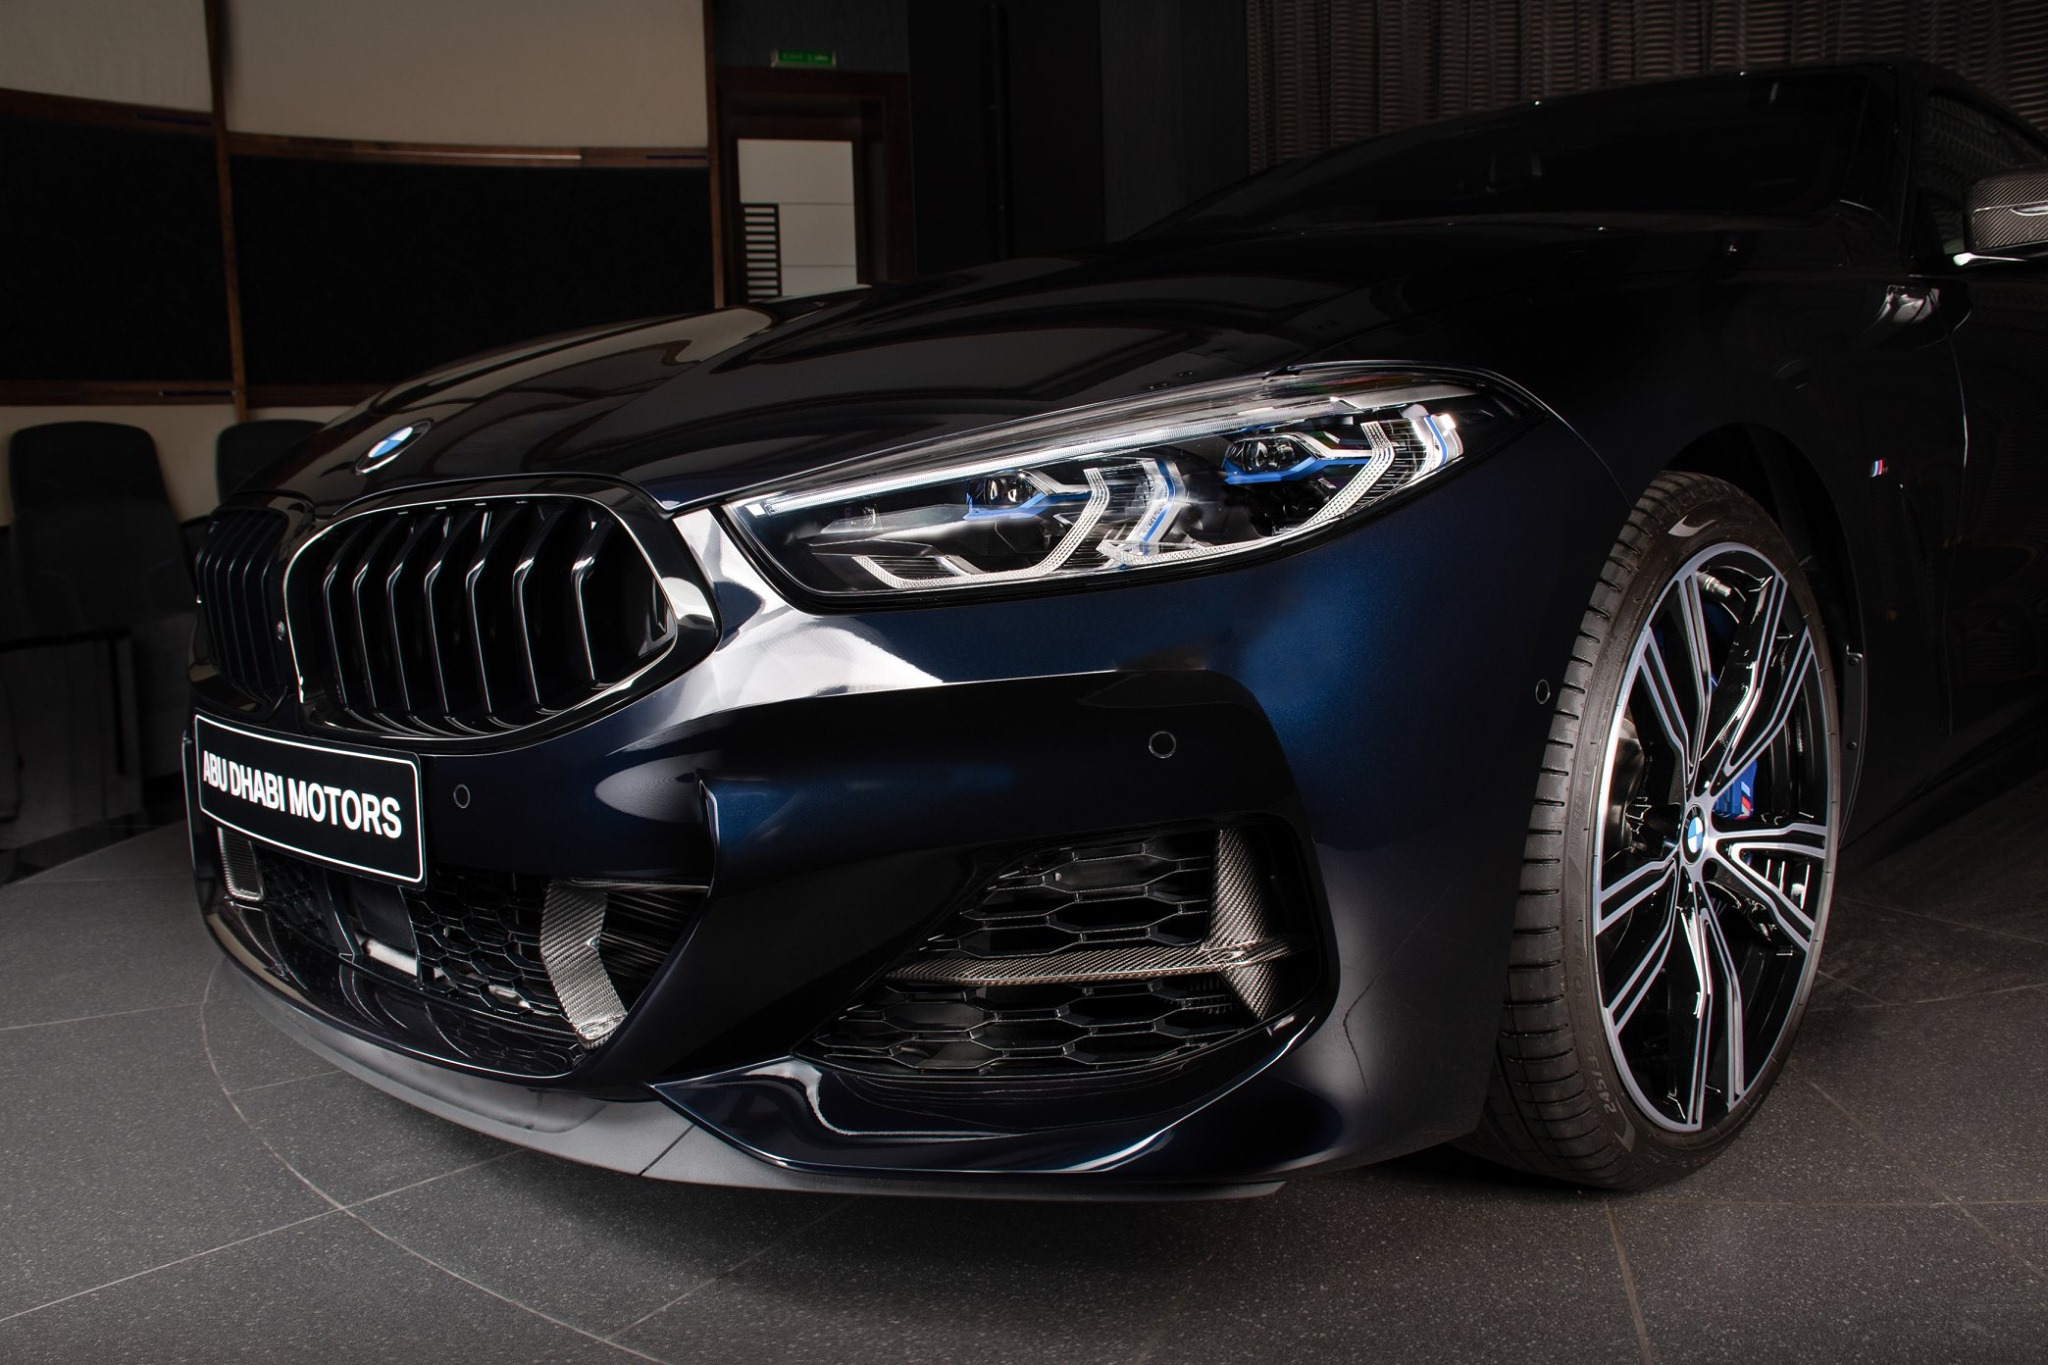 The New BMW M850i xDrive Gran Coupe in Carbon Black 10